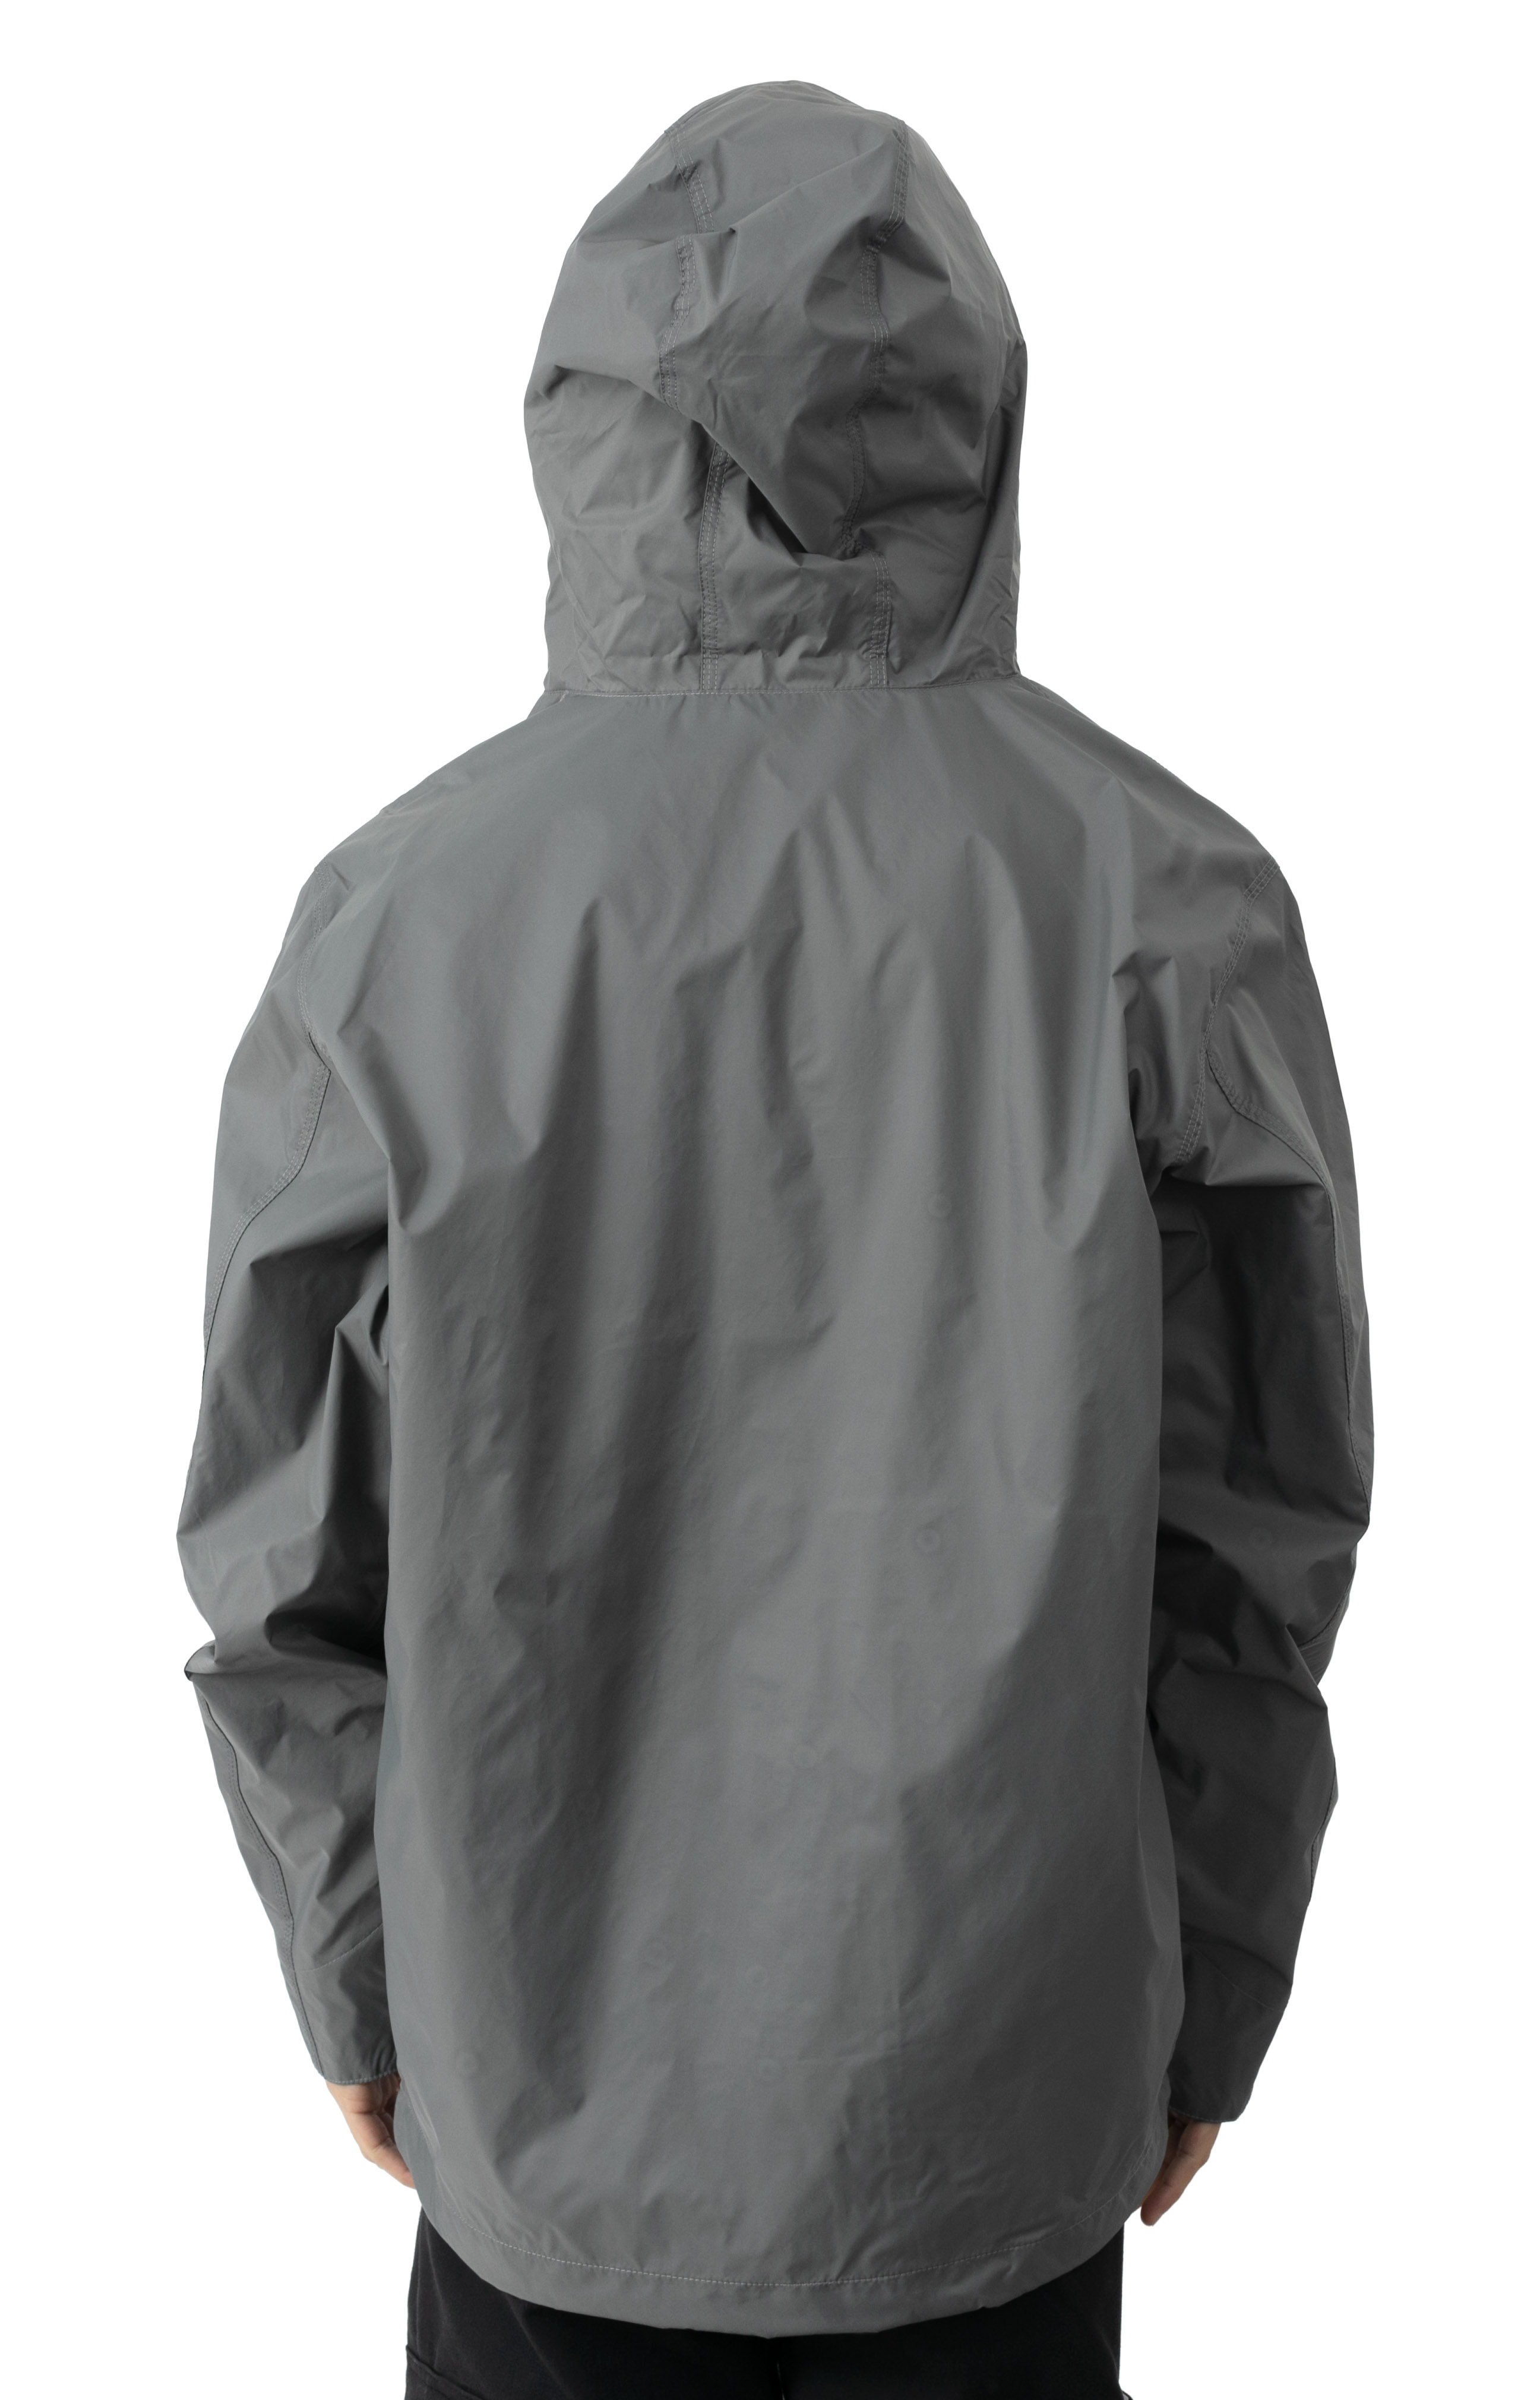 (100247) Rockford Jacket - Steel  3